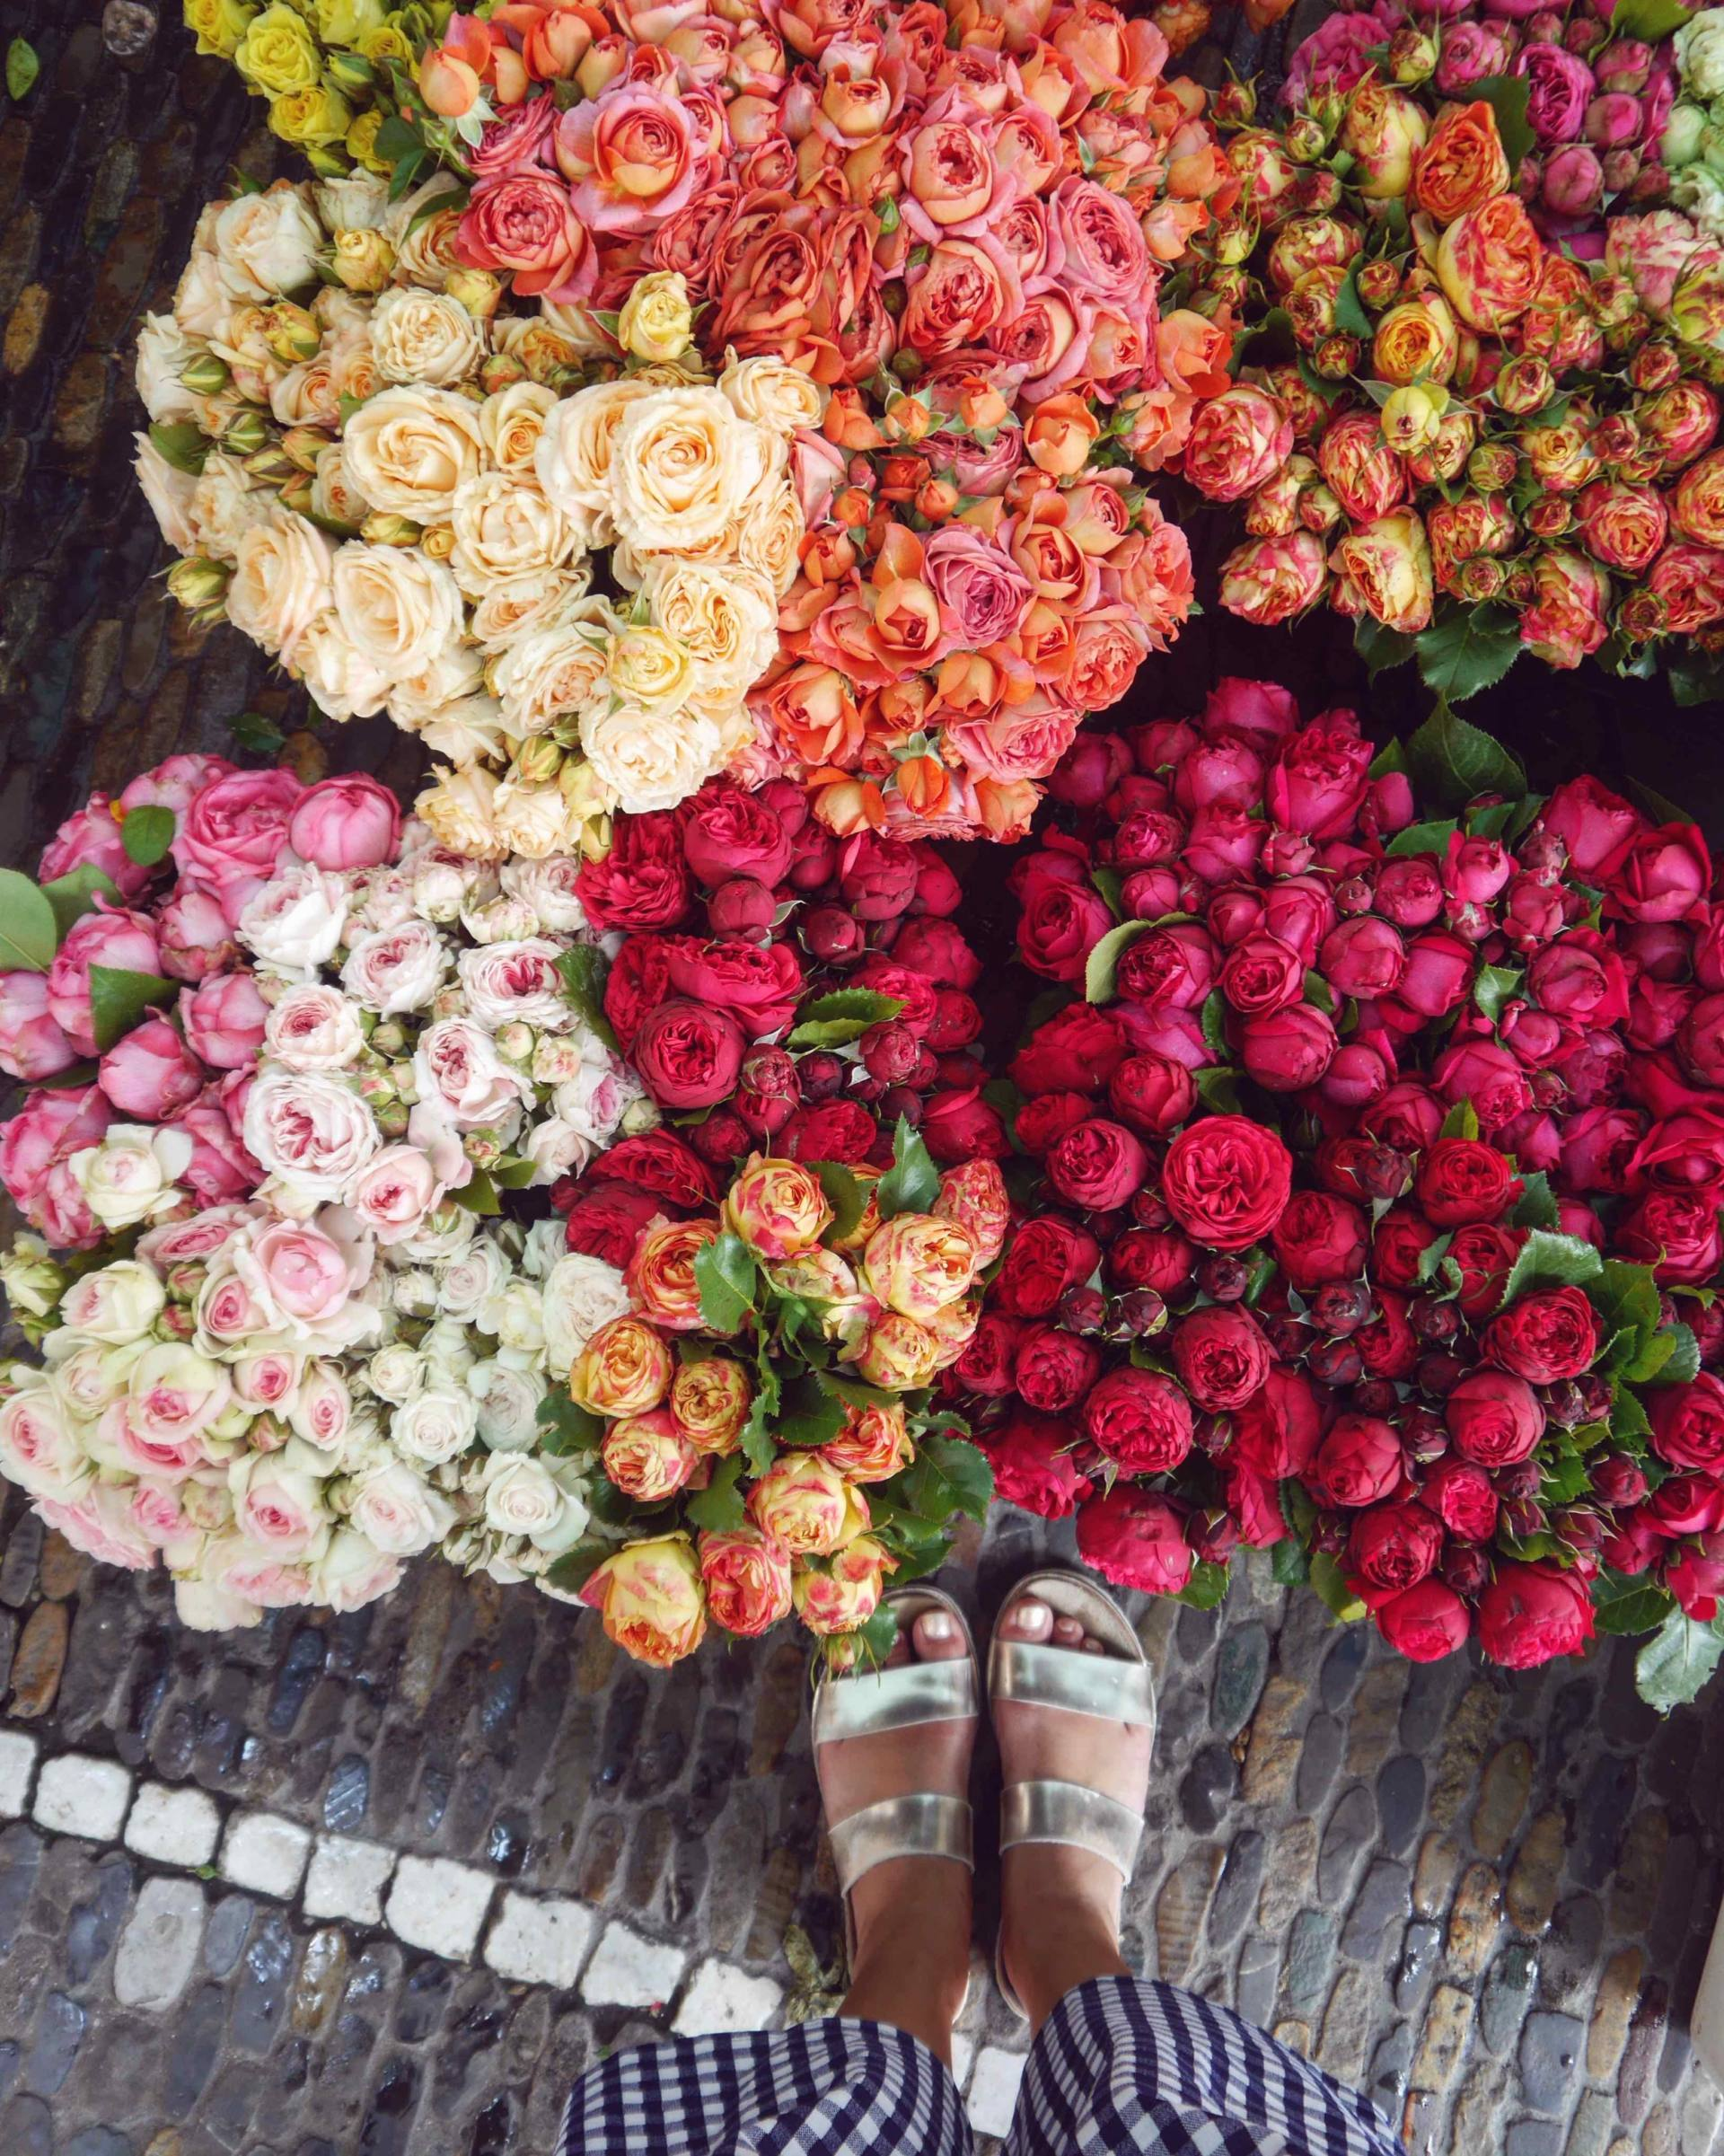 Flower Market Roses | Instagrammable Places in Freiburg